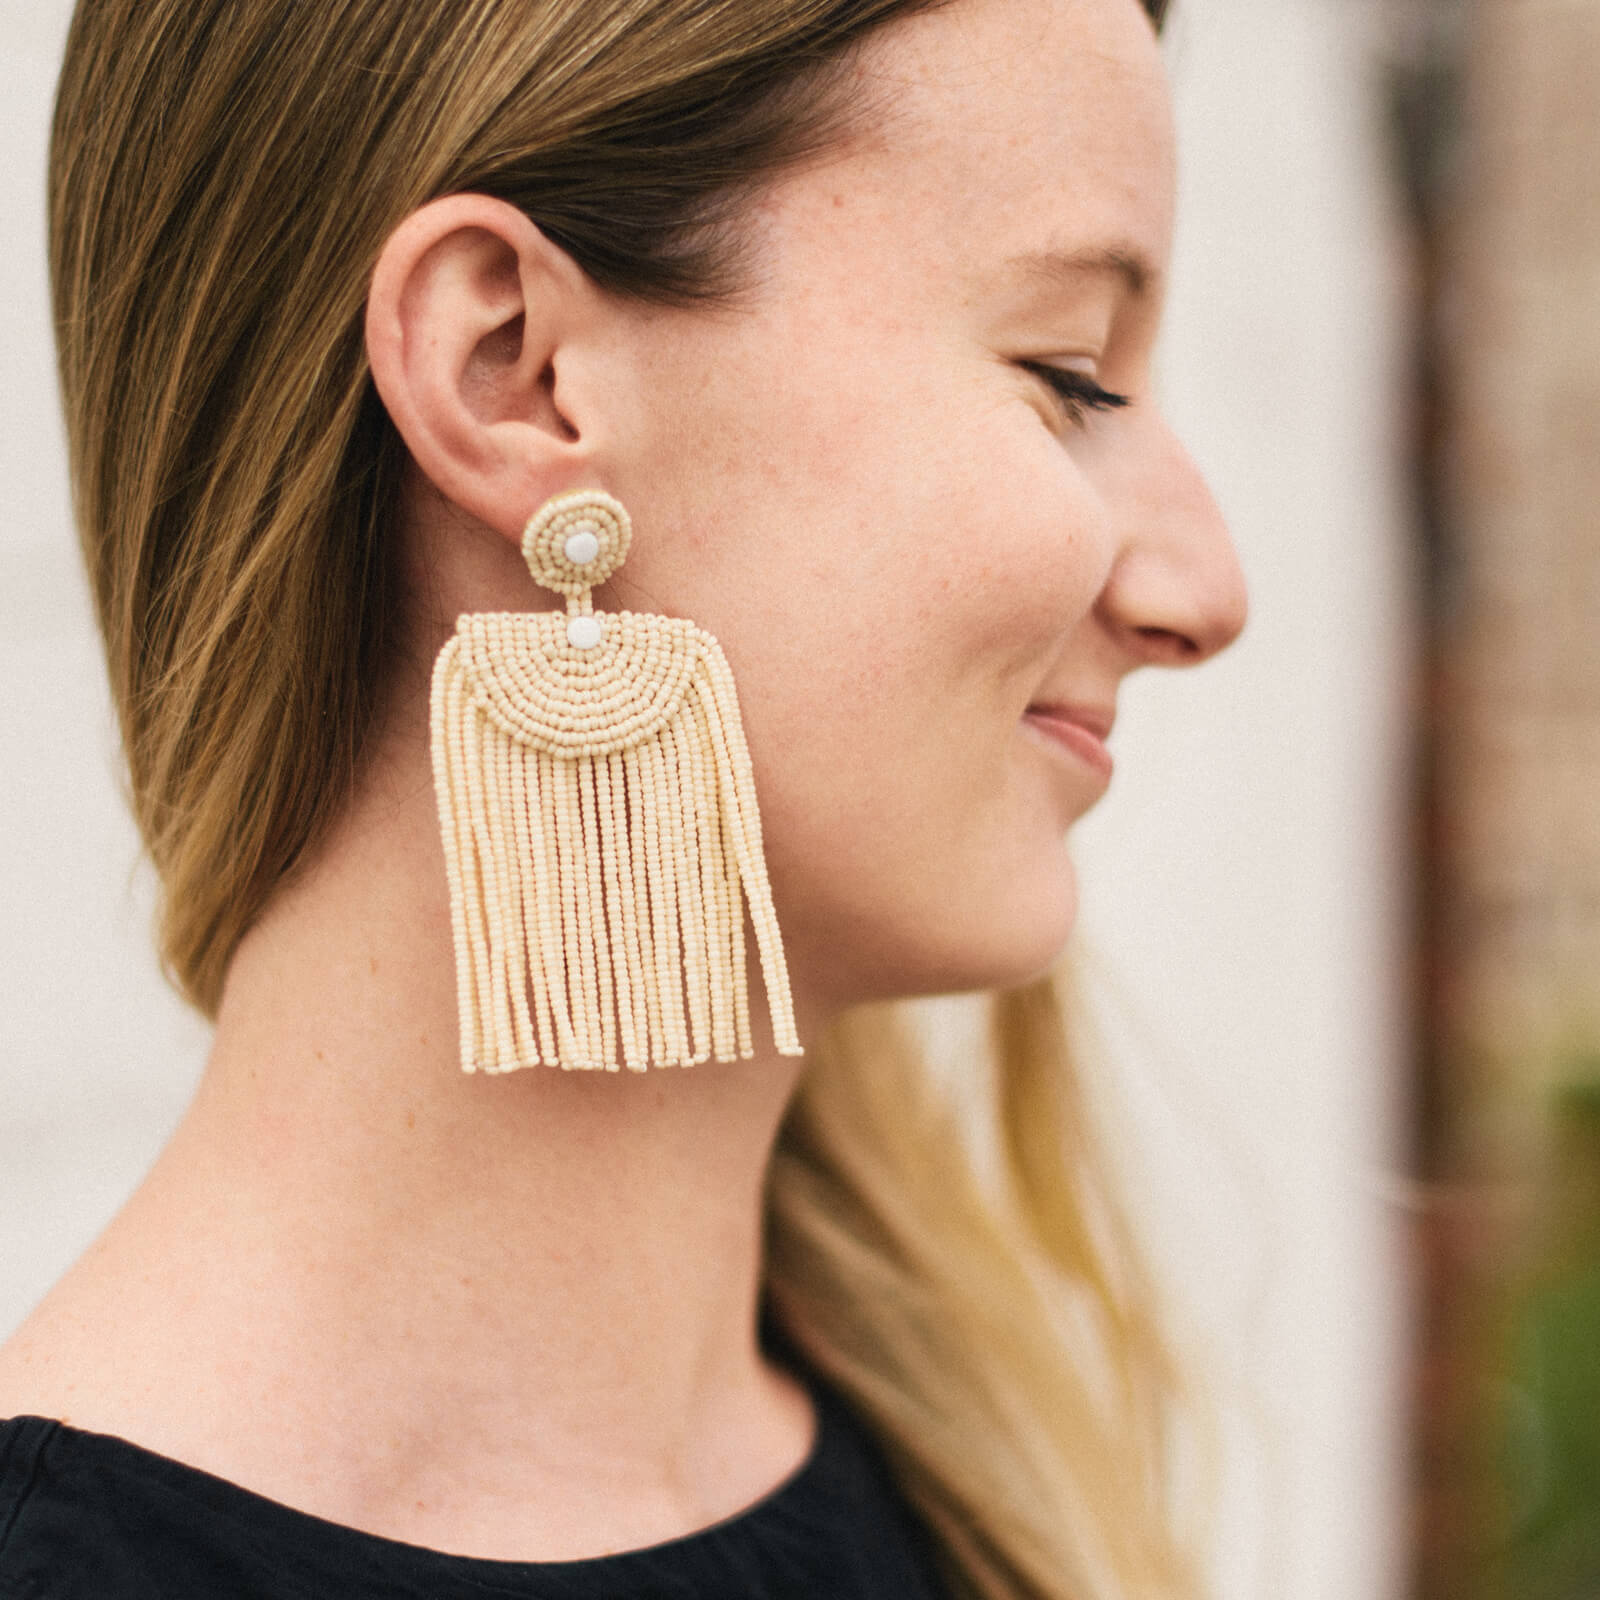 Pembatatu Leather Beaded Fringe Earrings - Cream